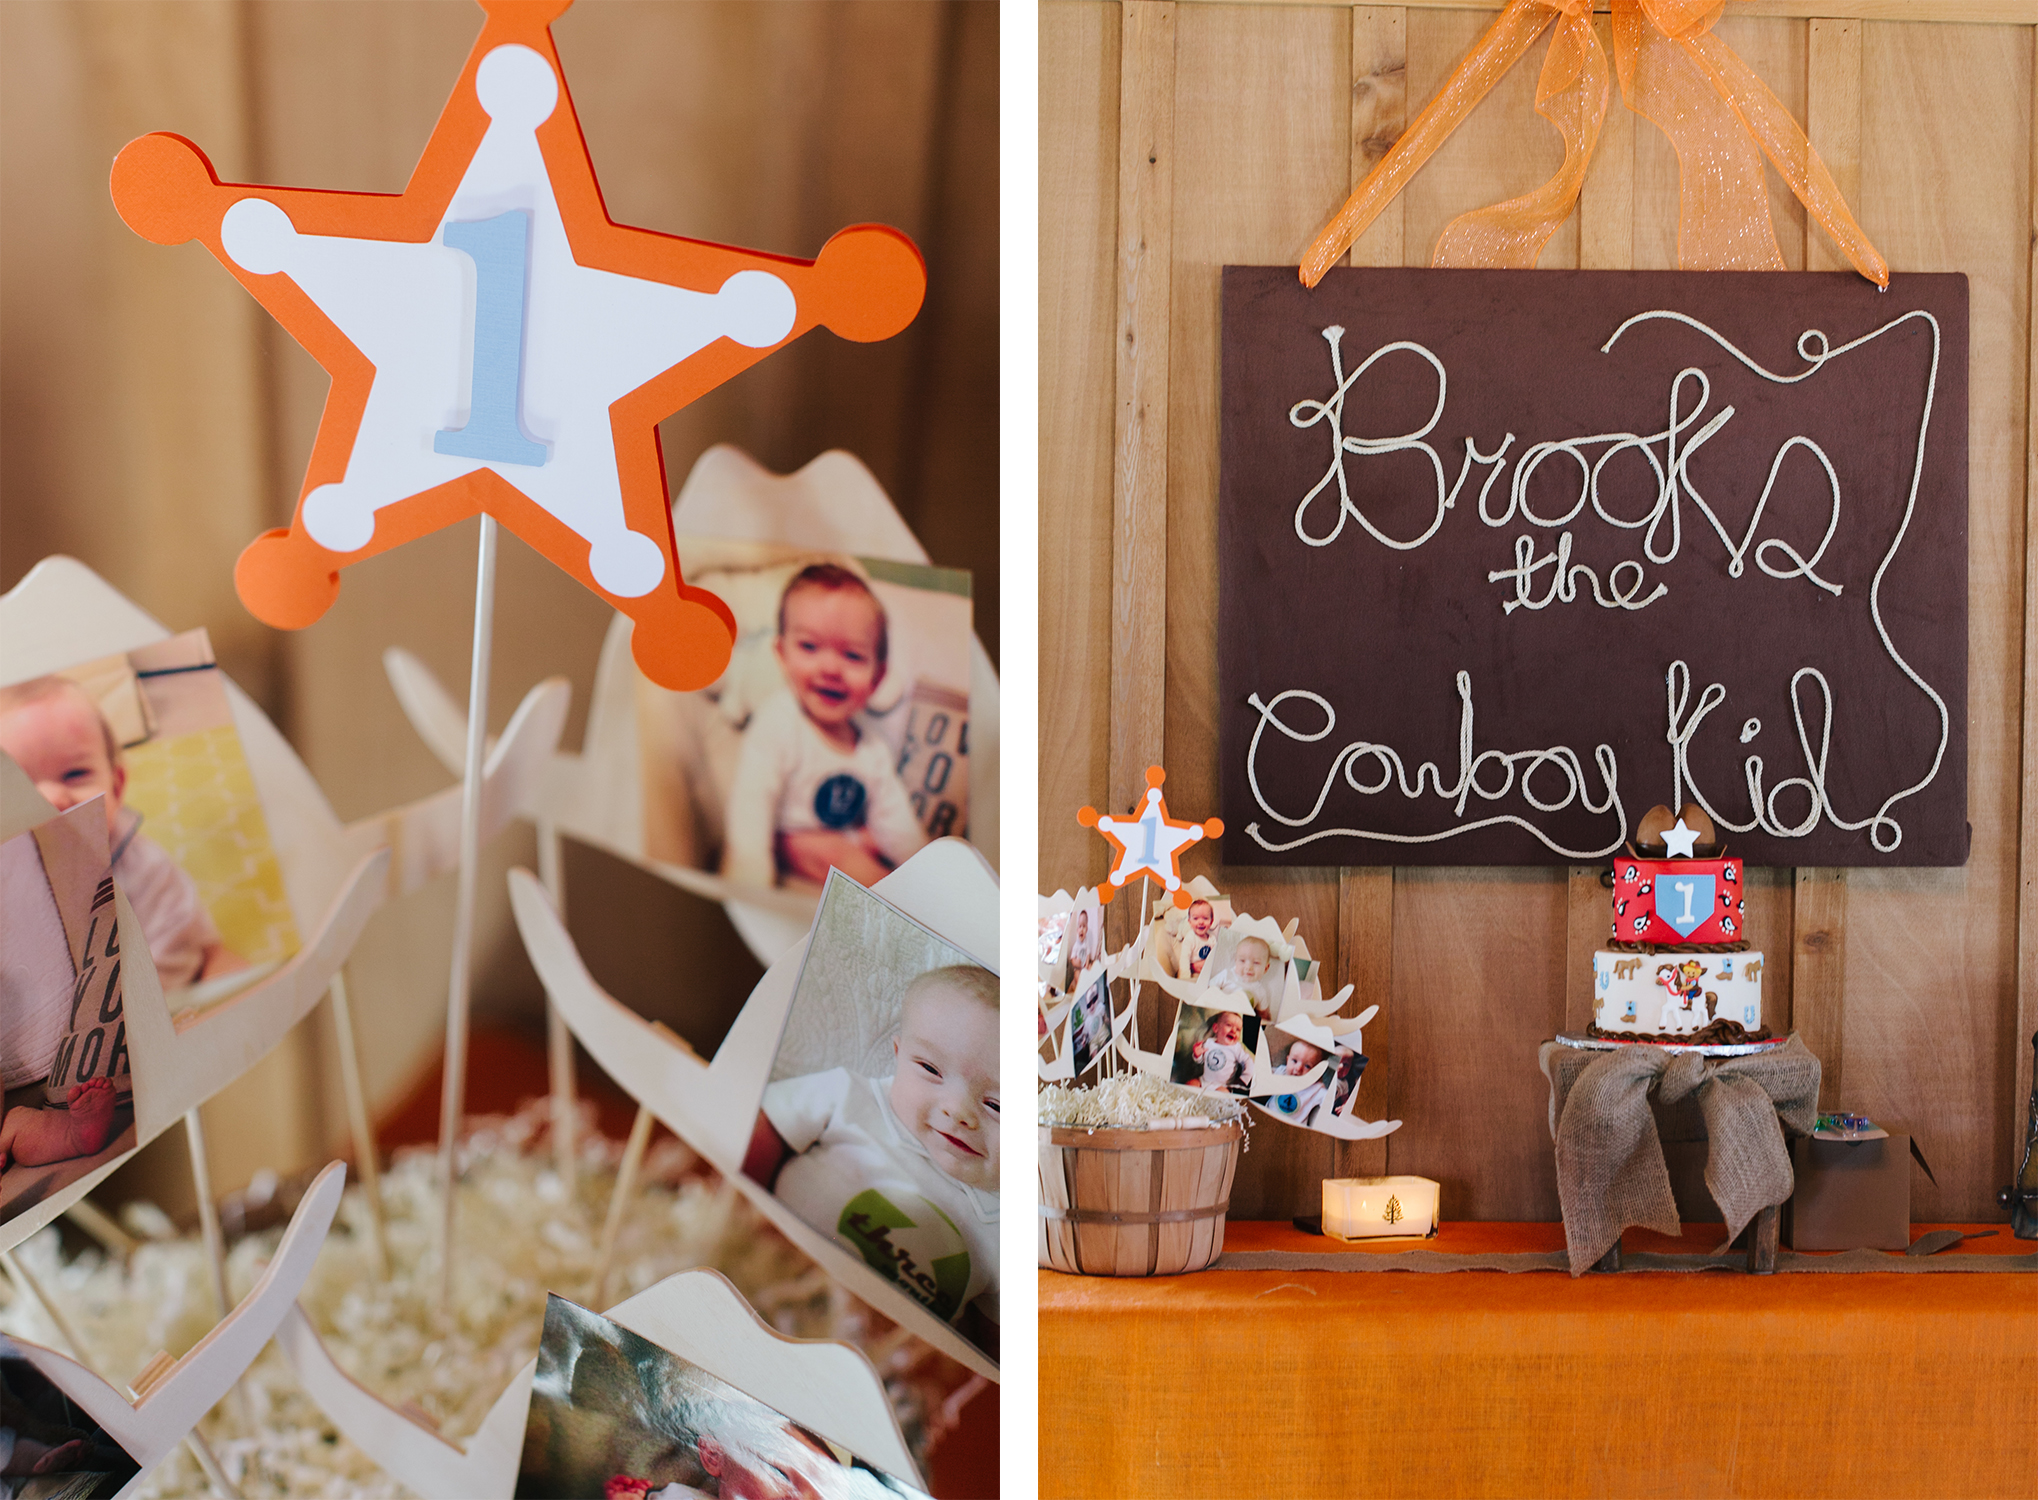 Kathryn-McCrary-Photography-Atlanta-Event-Photography-Brooks-Birthday-Collage-1.jpg